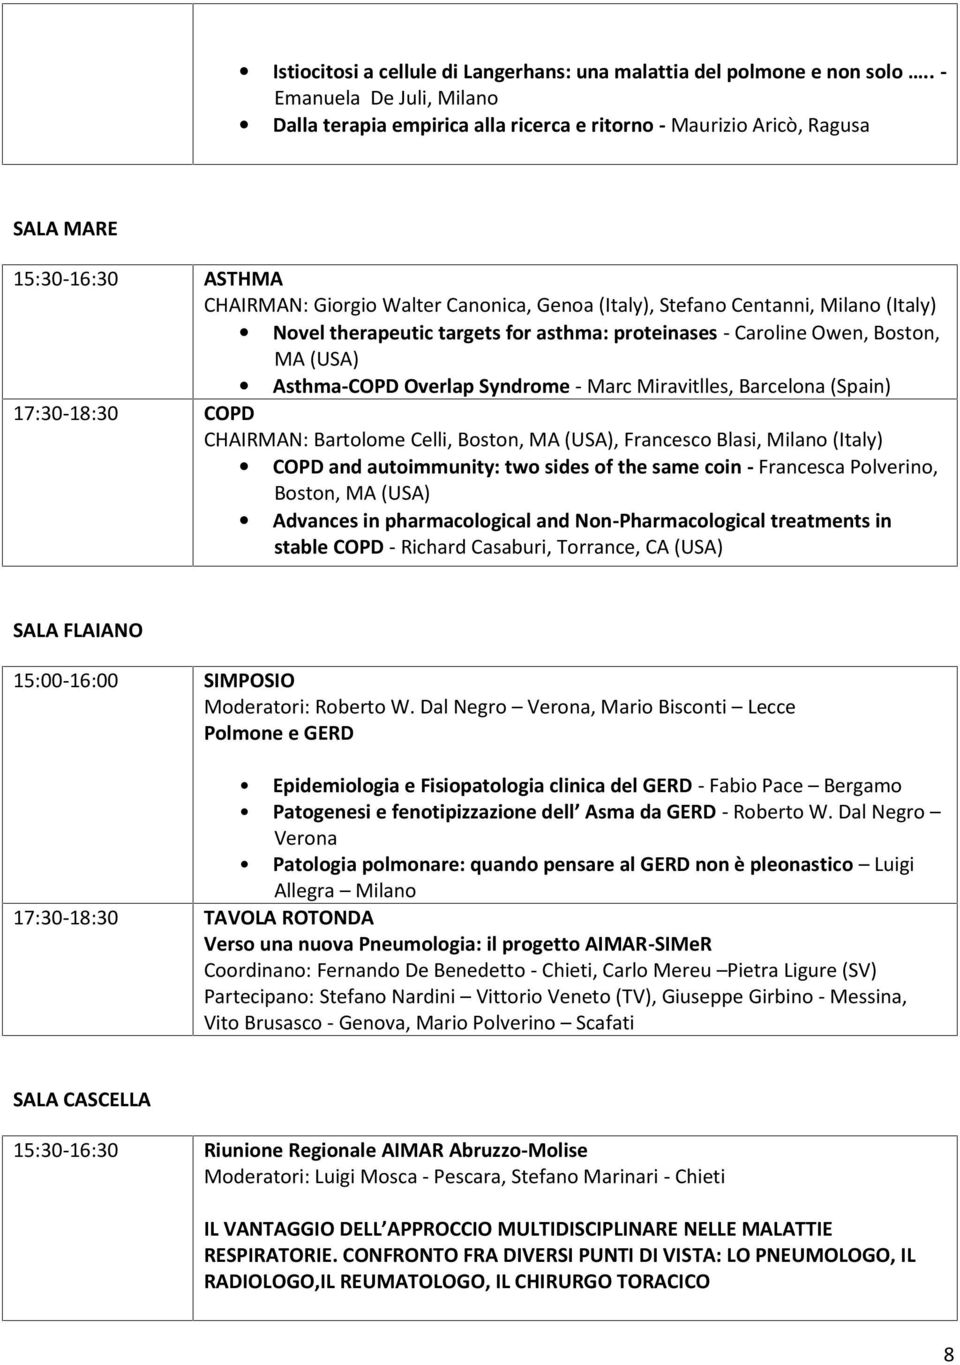 Milano (Italy) Novel therapeutic targets for asthma: proteinases - Caroline Owen, Boston, MA (USA) Asthma-COPD Overlap Syndrome - Marc Miravitlles, Barcelona (Spain) 17:30-18:30 COPD CHAIRMAN: